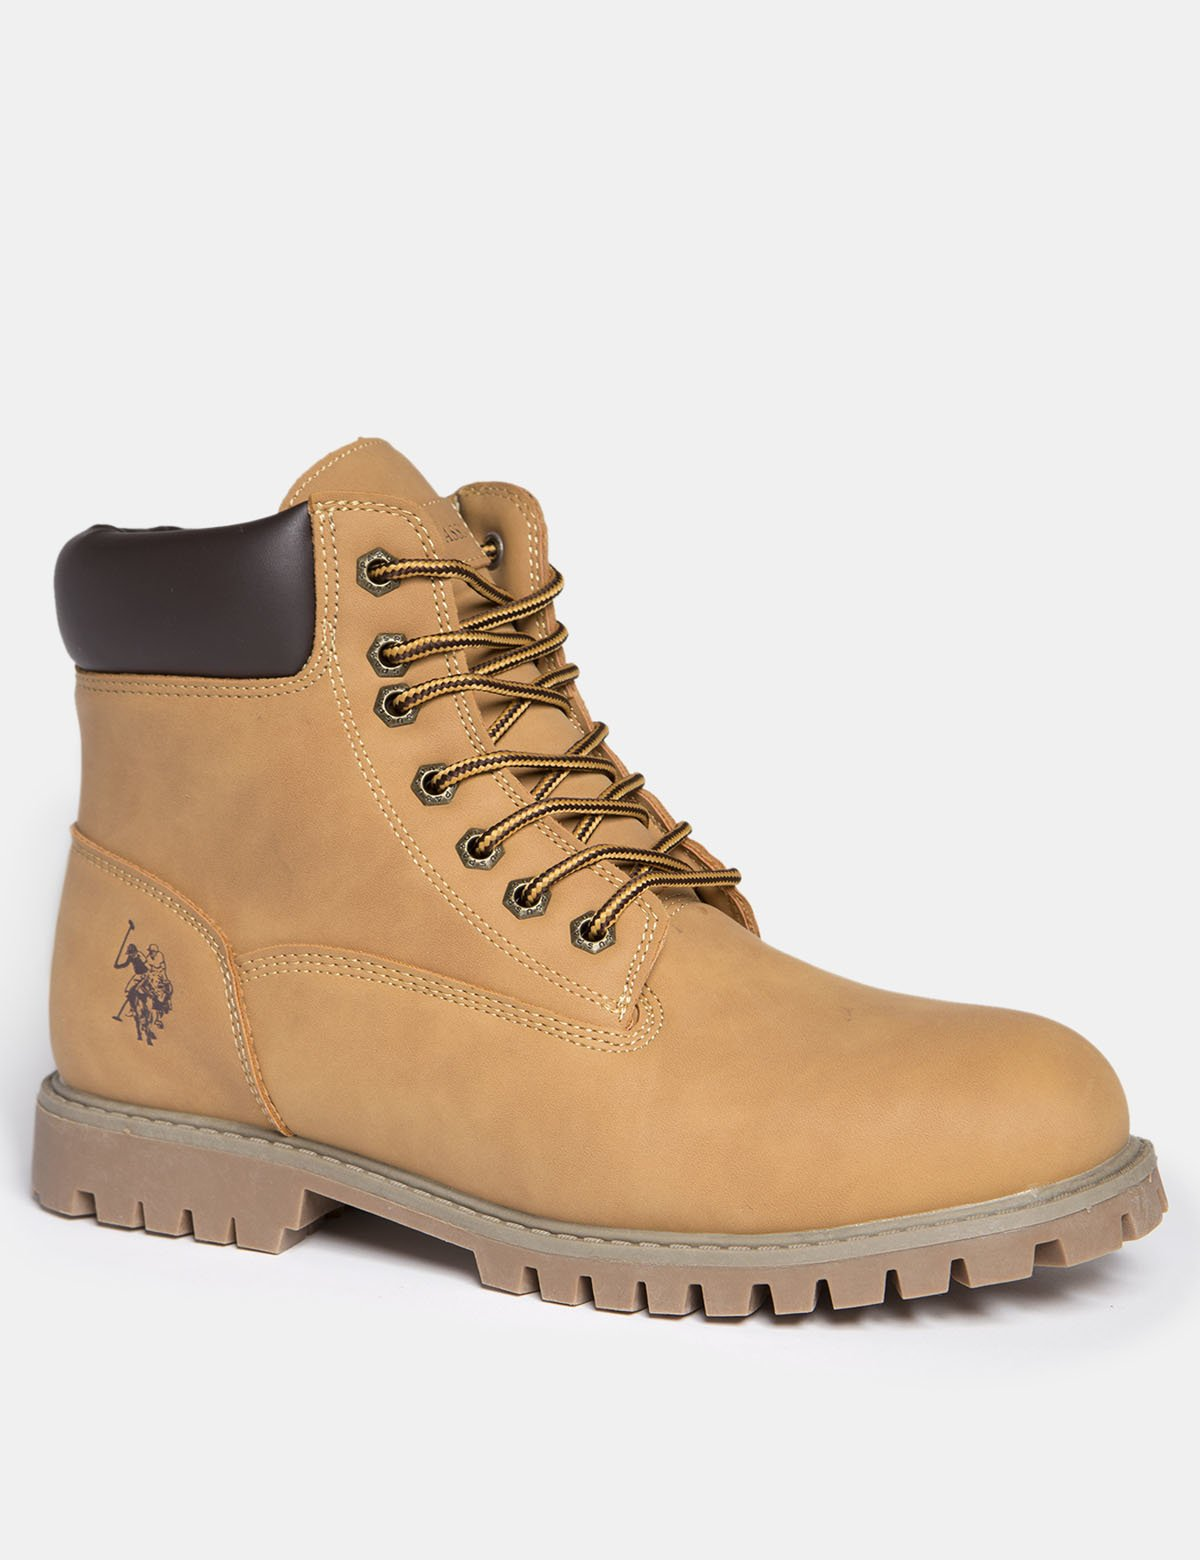 OWEN WORK BOOT - U.S. Polo Assn.